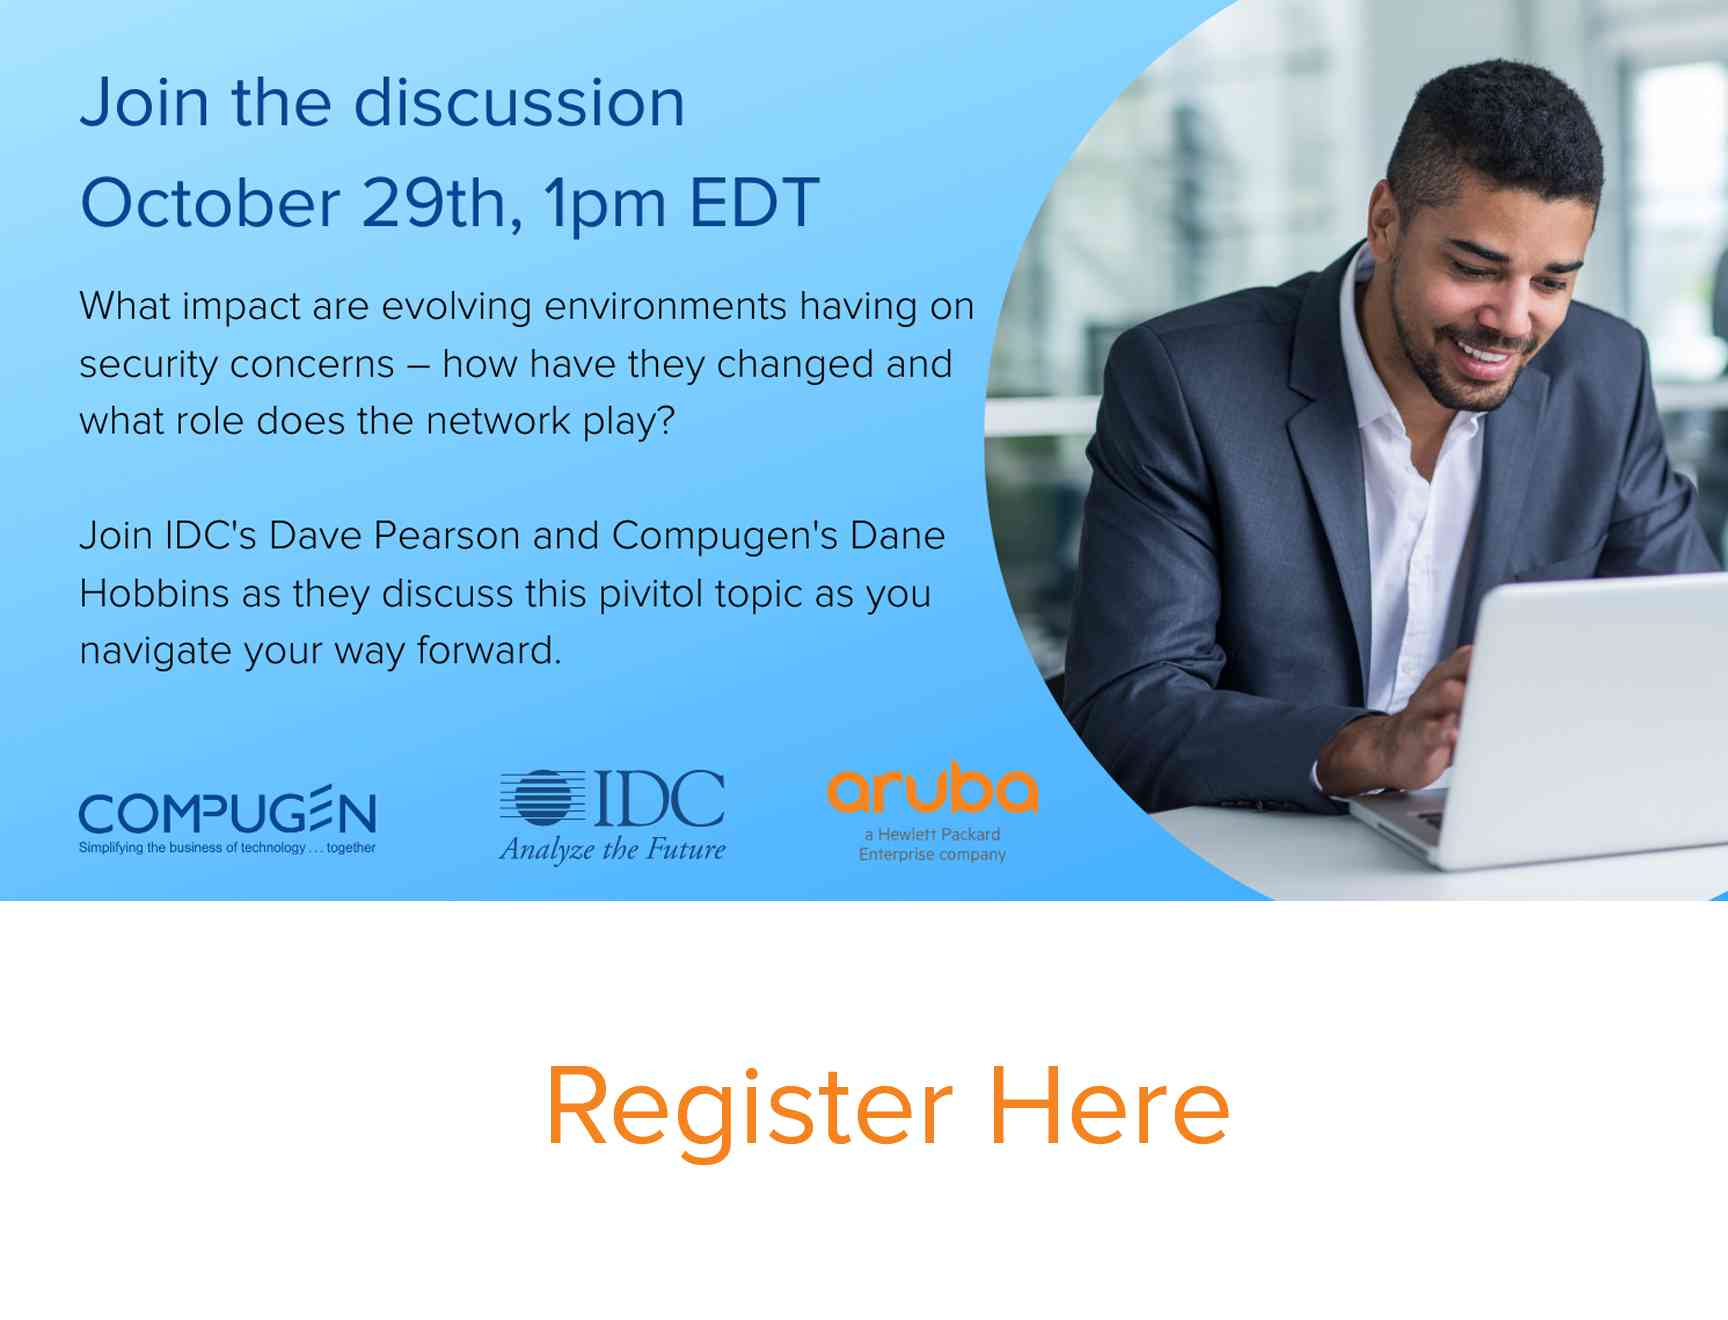 Join the discussion webinar1 new logo2